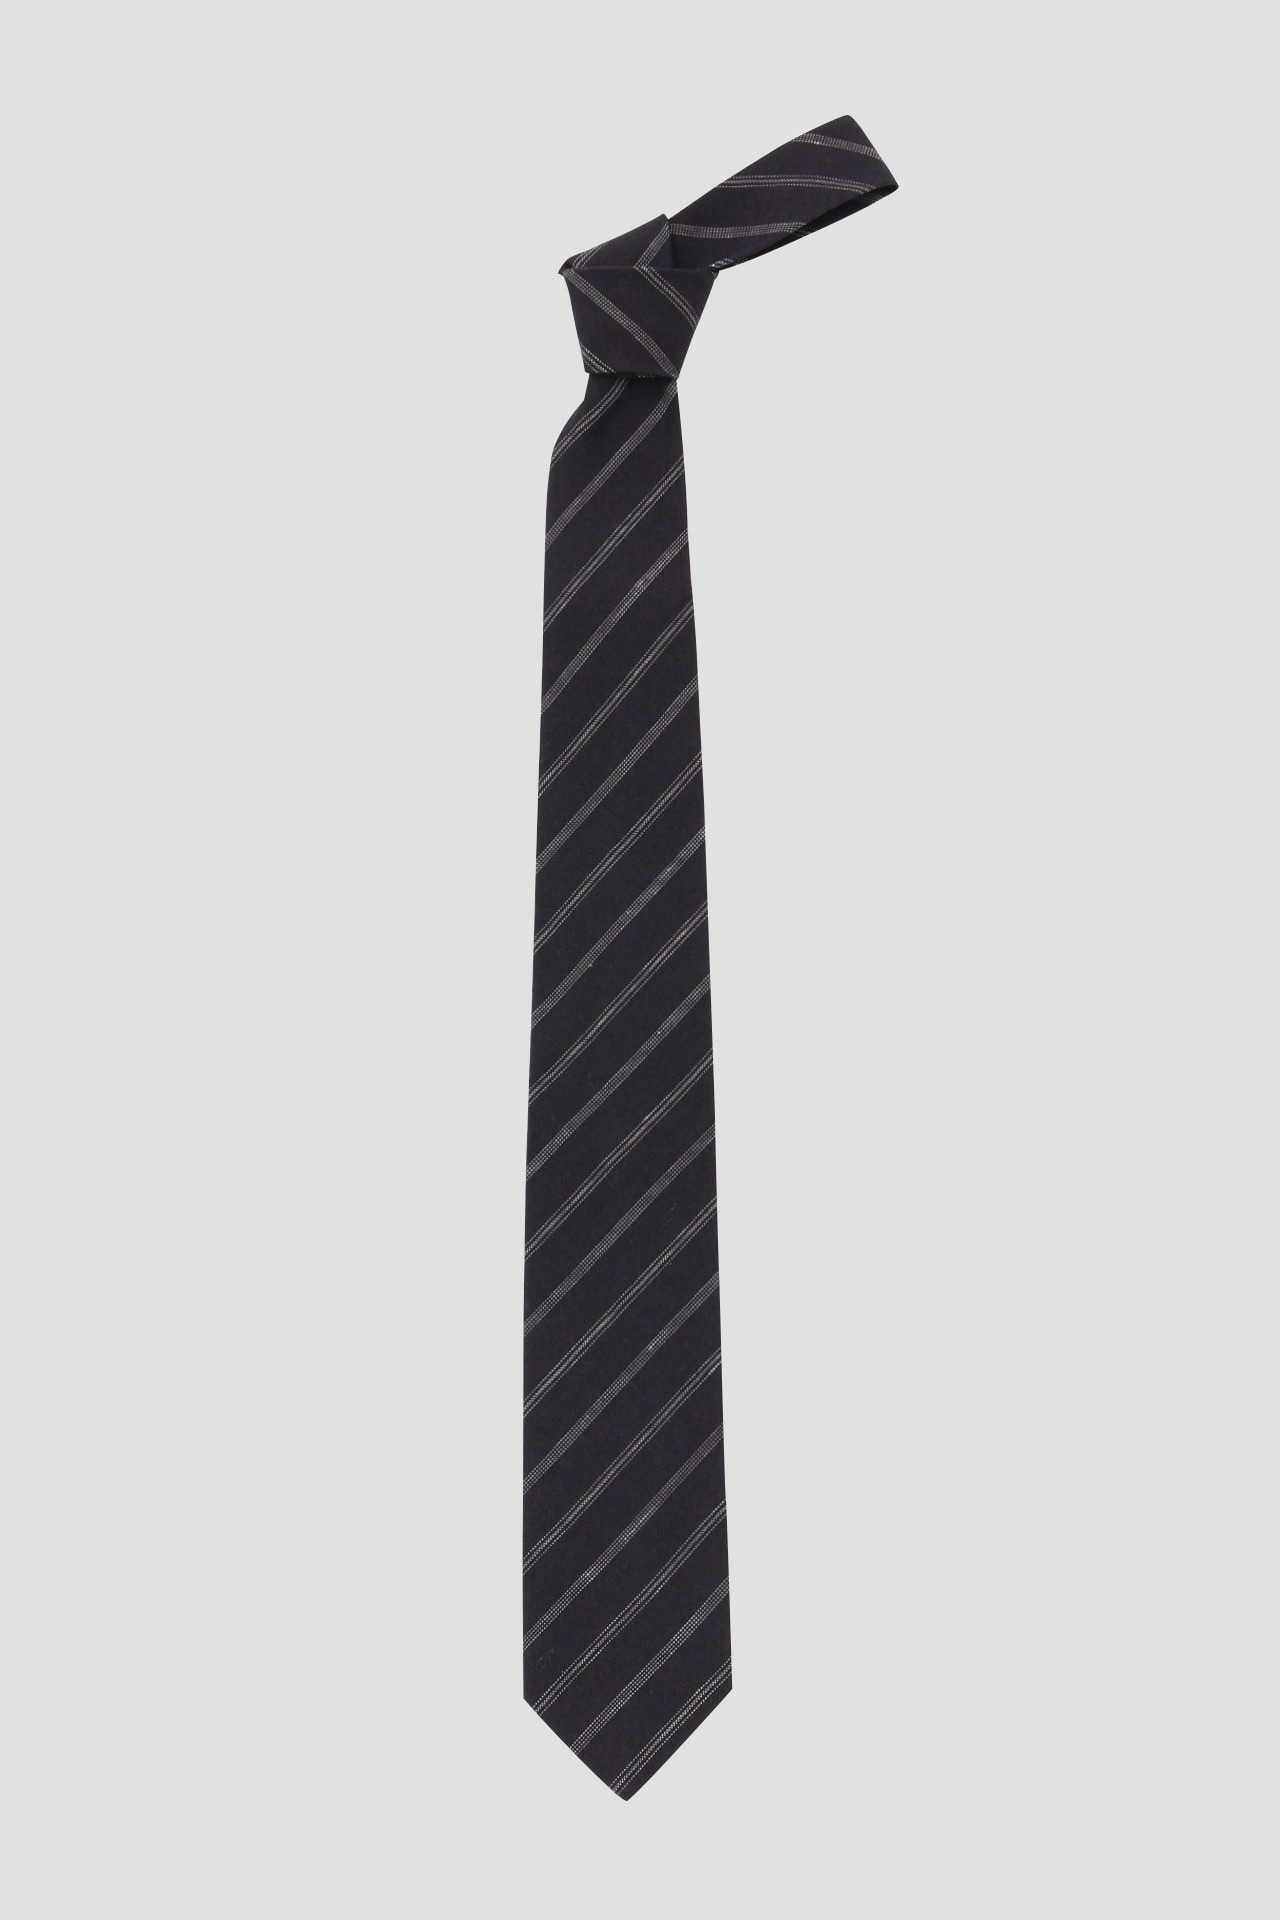 GRAPHIC STRIPE TIE1